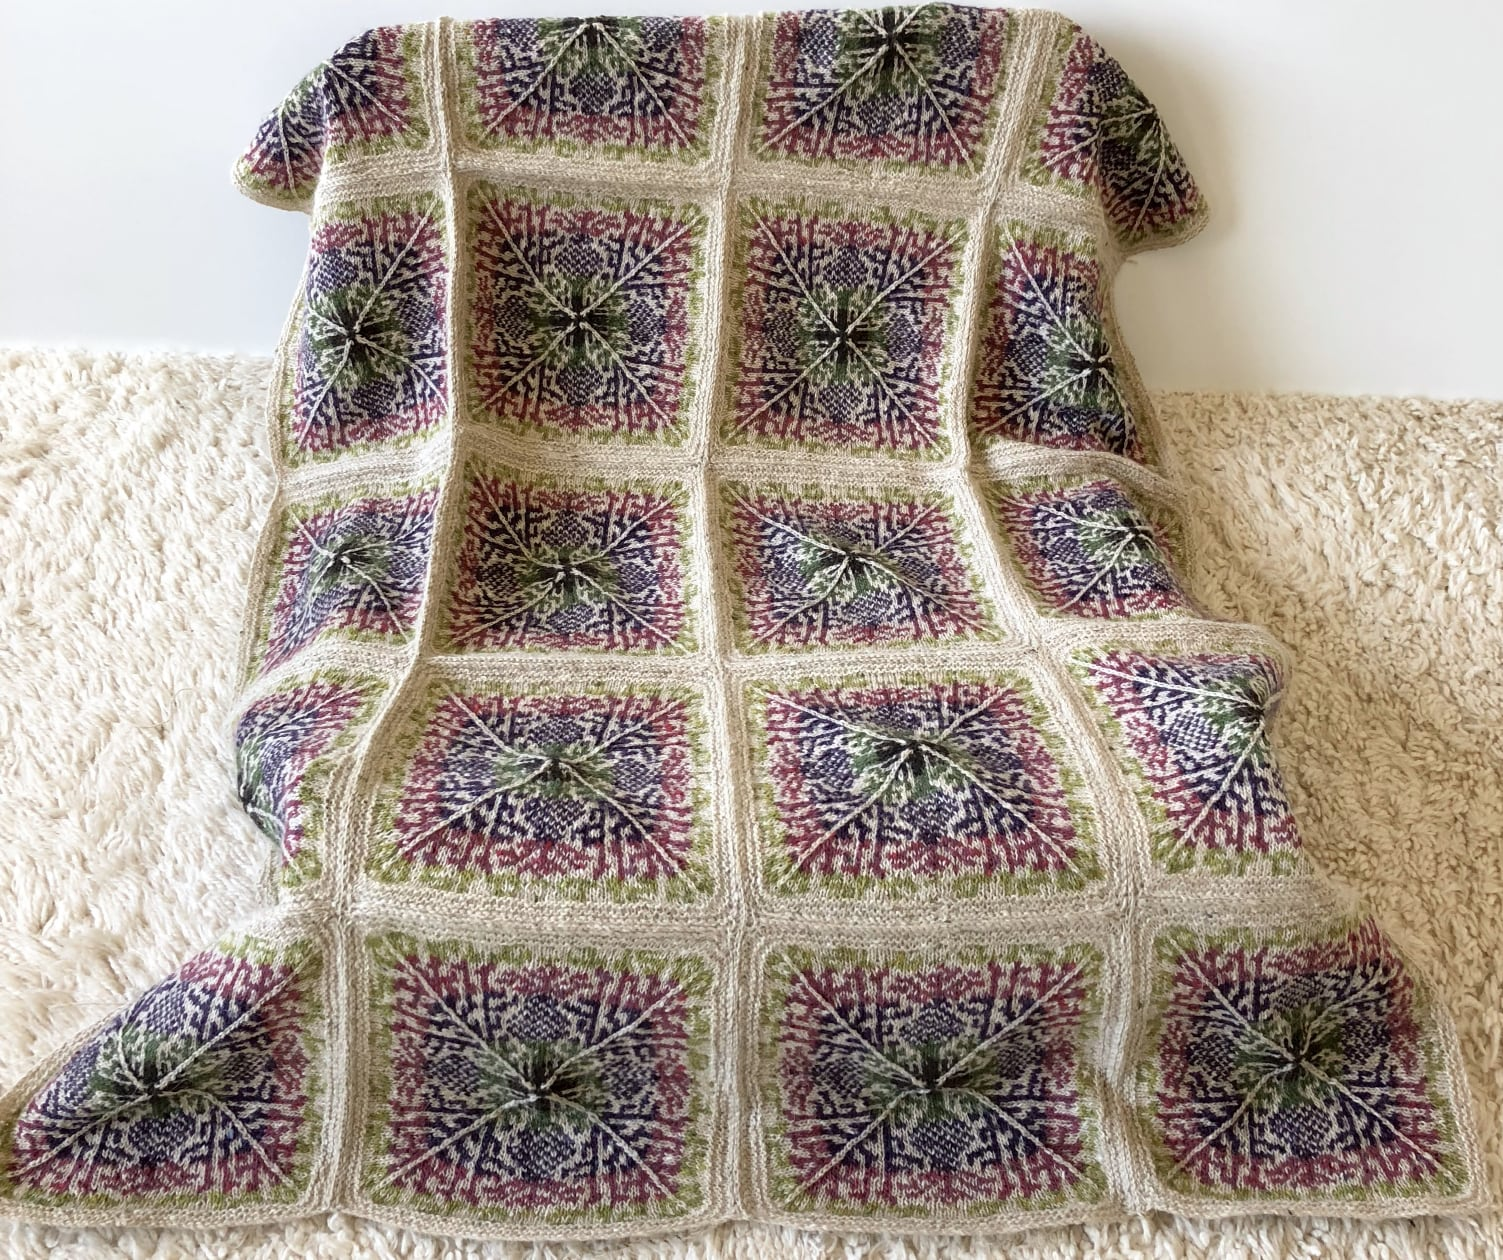 knitting thistles, stitch by stitch, square by square